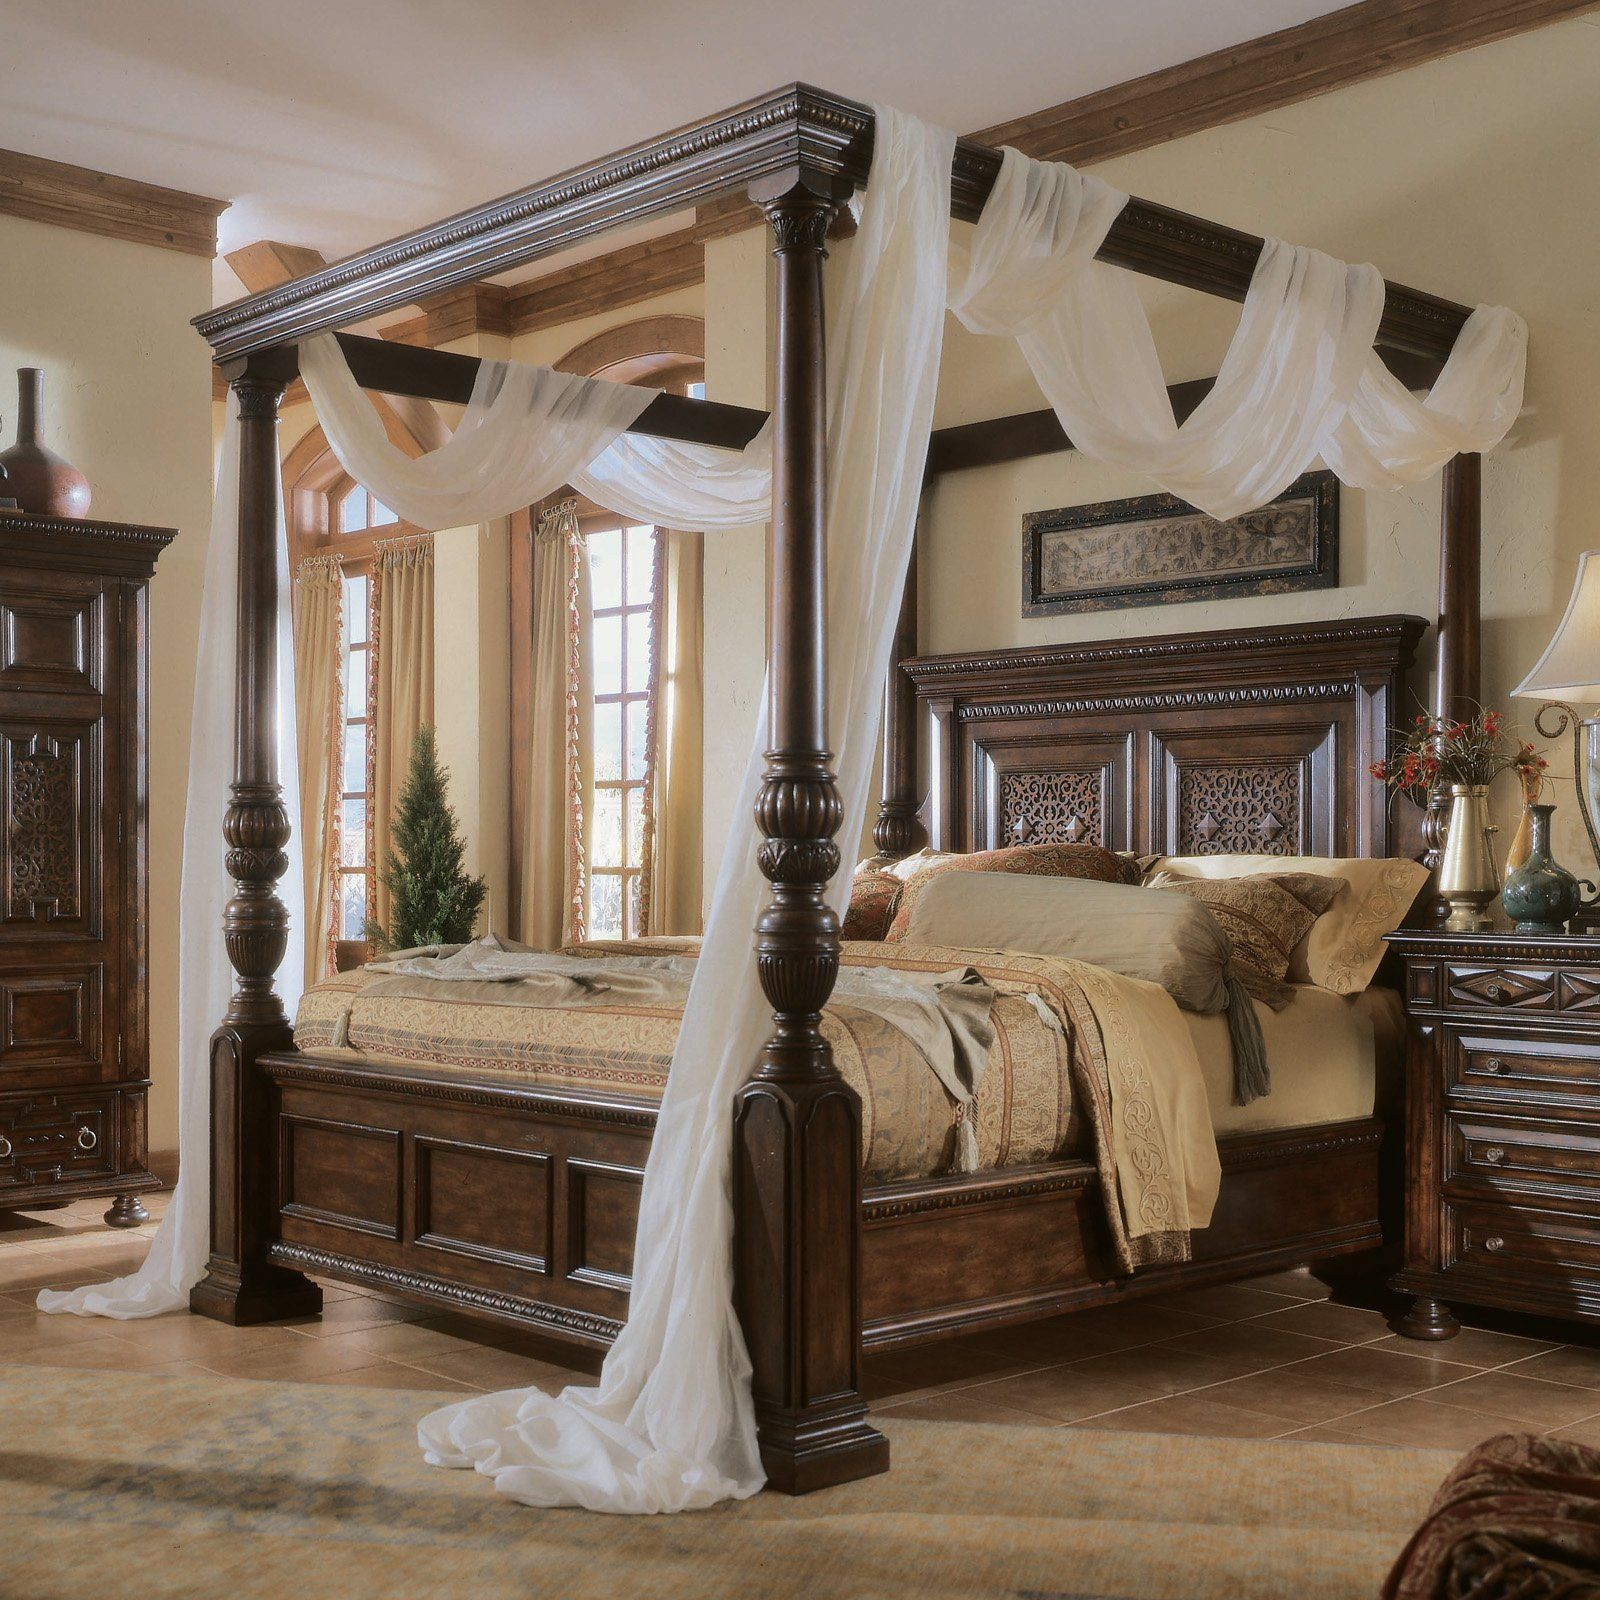 15 Most Beautiful Decorated And Designed Beds Canopy bed